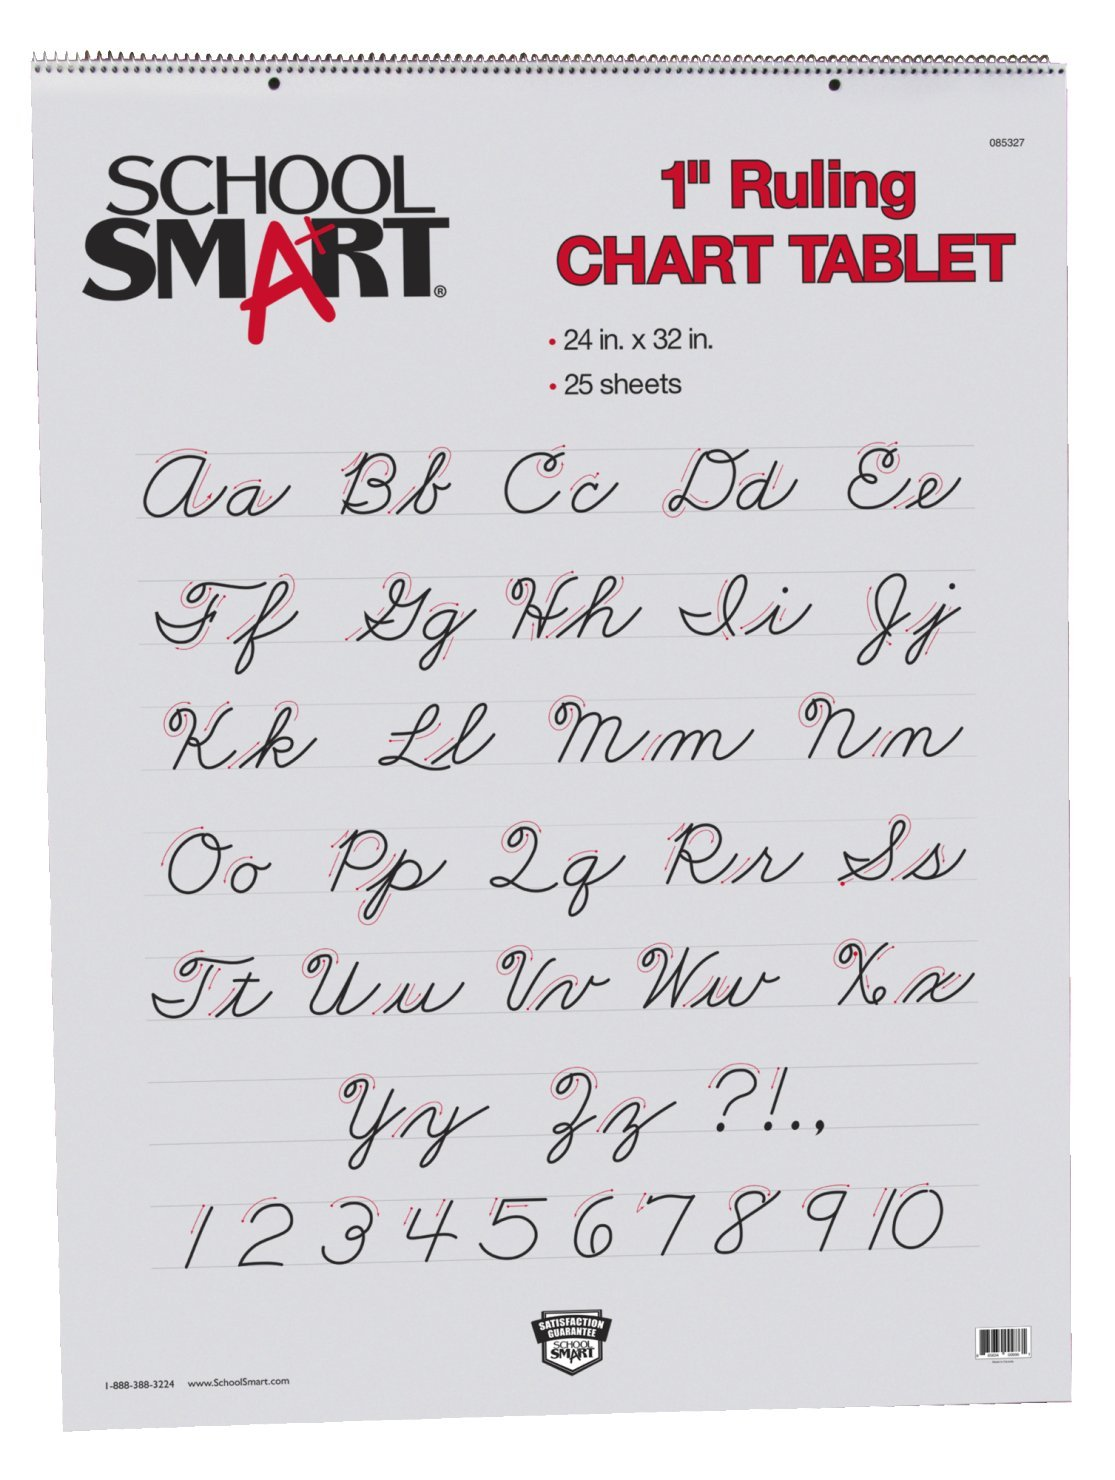 School Smart 85327 24 x 32 - 1 inch Line Chart Tablet - 25 Sheets - White